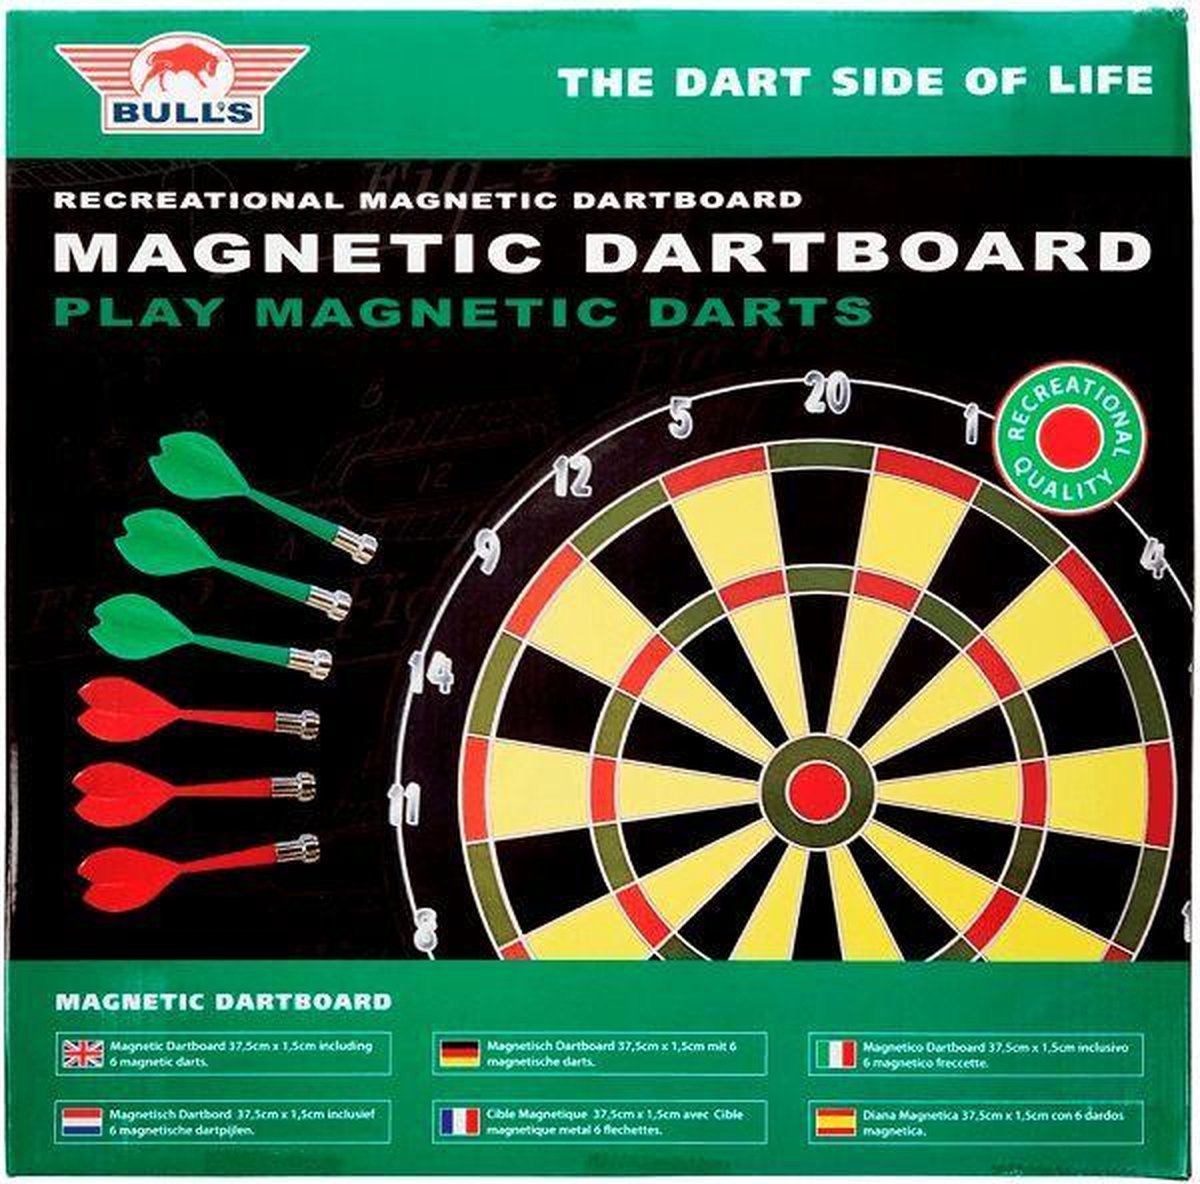 Bull's Magnetic Dartboard